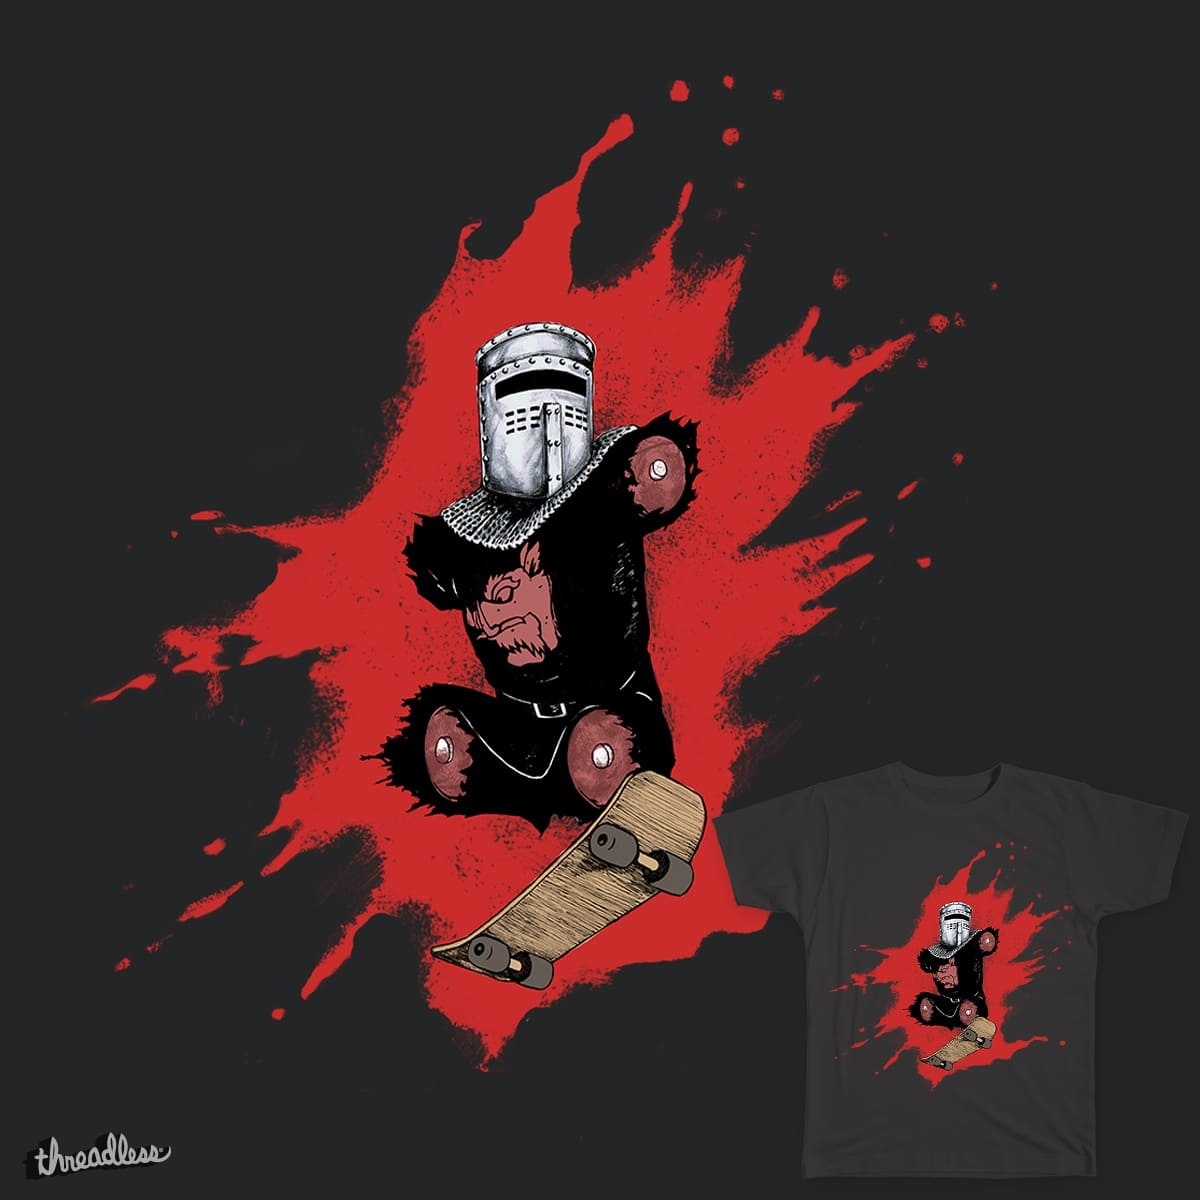 Skills by Herculoid and goliath72 on Threadless